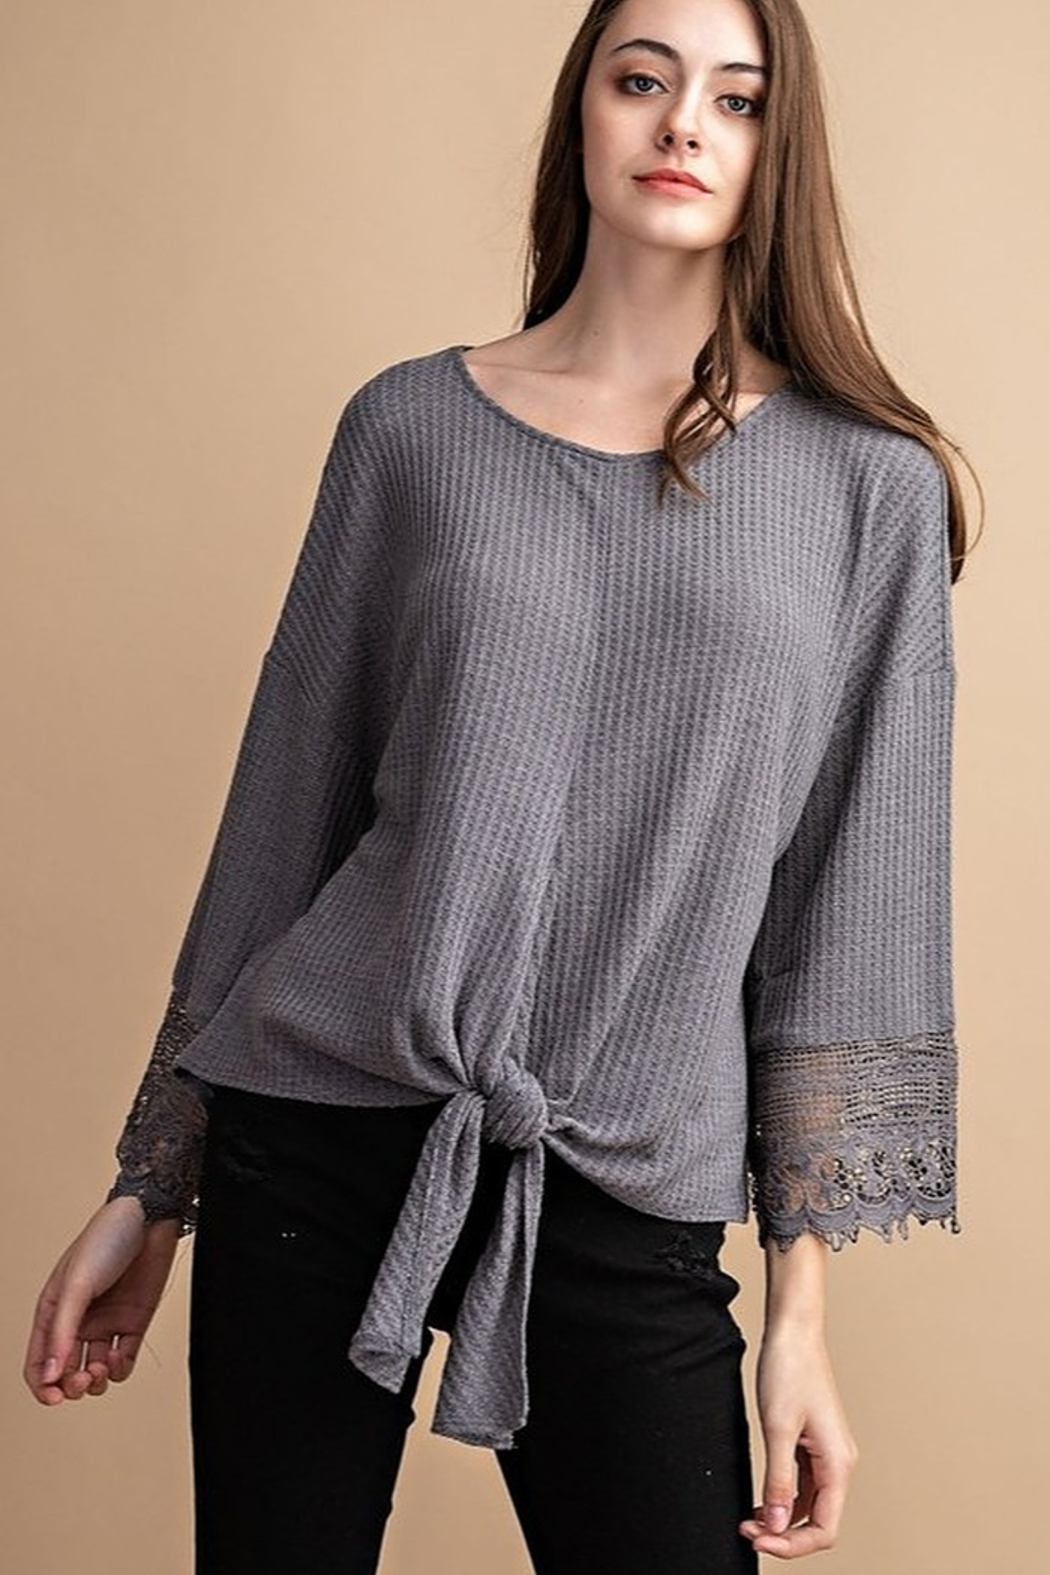 FSL Apparel Lace Crochet Contrast Top - Main Image